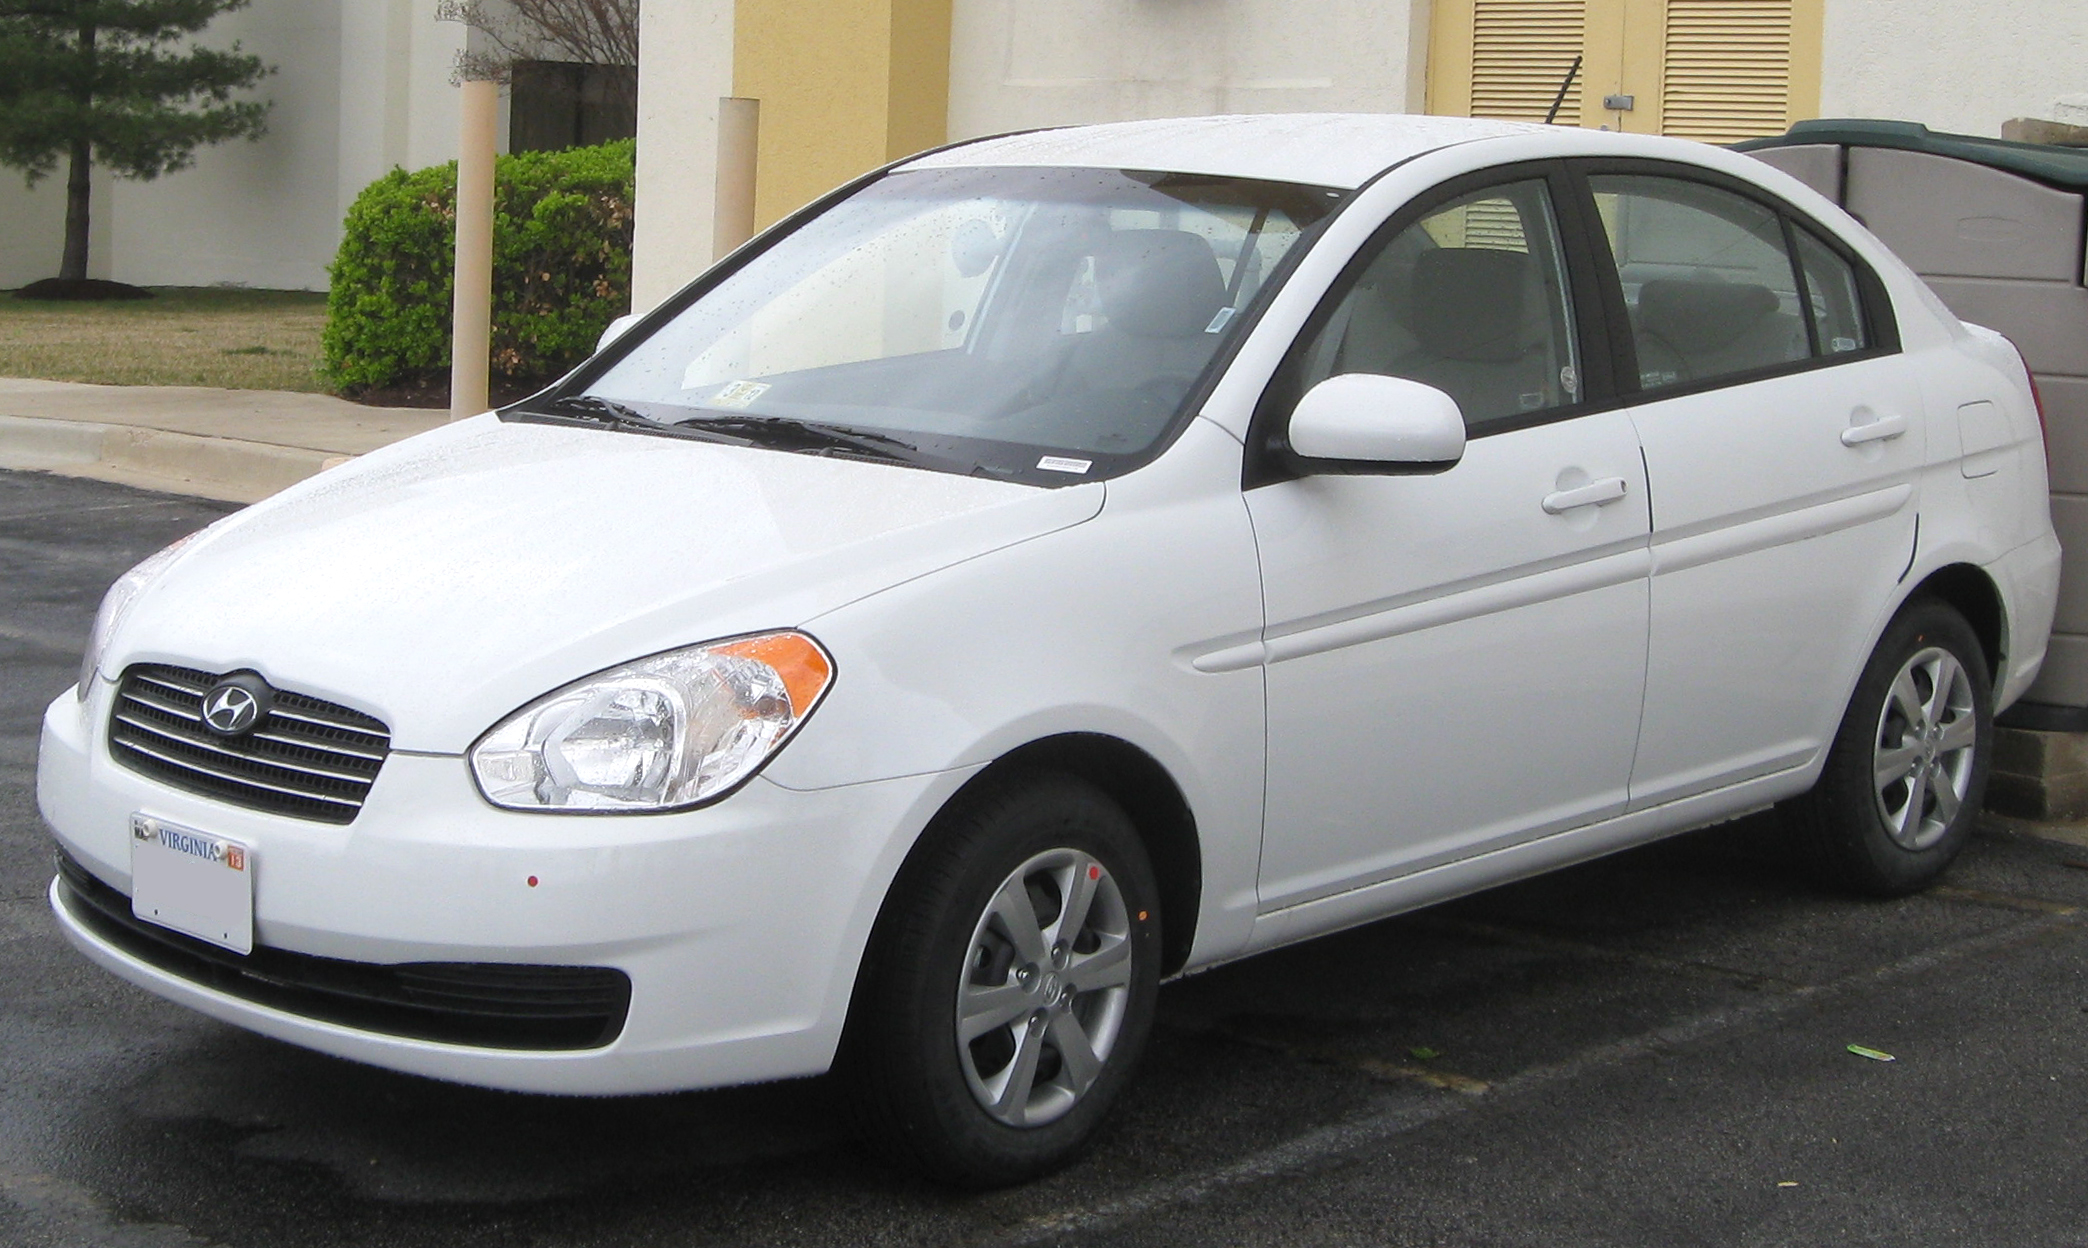 File Hyundai Accent Sedan 03 24 2011 Jpg Wikimedia